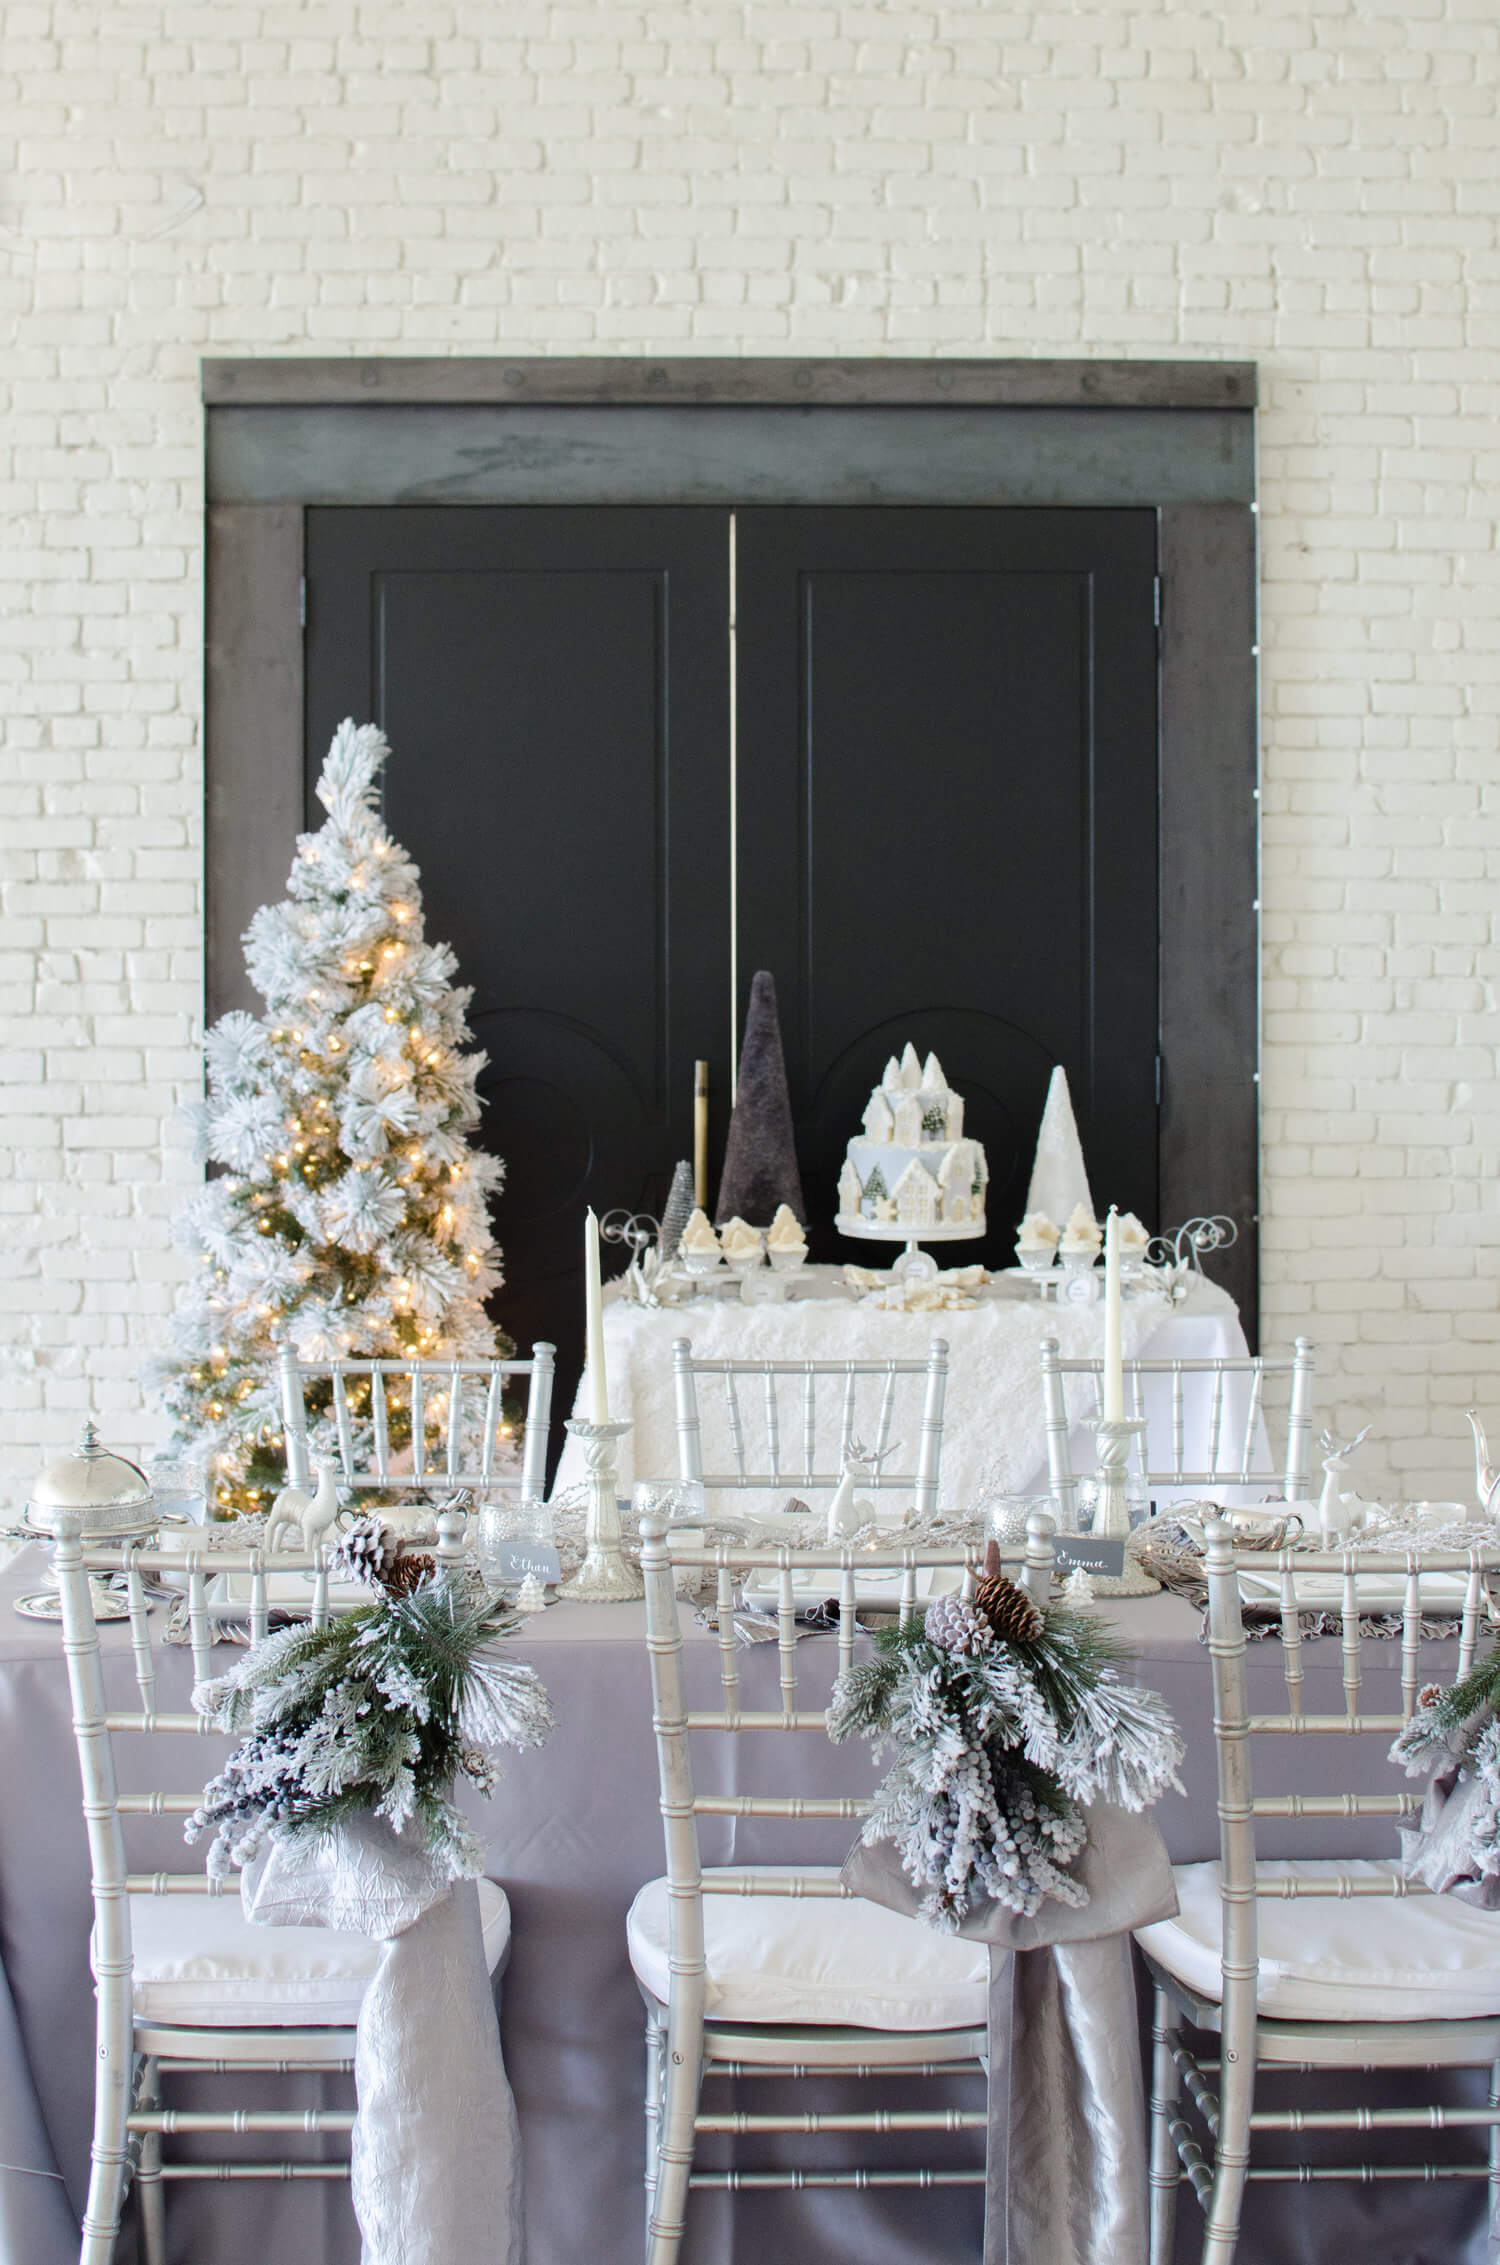 Winter Party Chivari Chairs decorated with flocked pine boughs, pine cones and a shimmery grey sash. See more ideas from this Winter Wonderland themed Bridal Shower Inspiration created by Mint Event Design www.minteventdesign.com #winterweddingideas #weddingwedding #bridalshowerideas #winterwonderland #chairdecor #chairdecorations